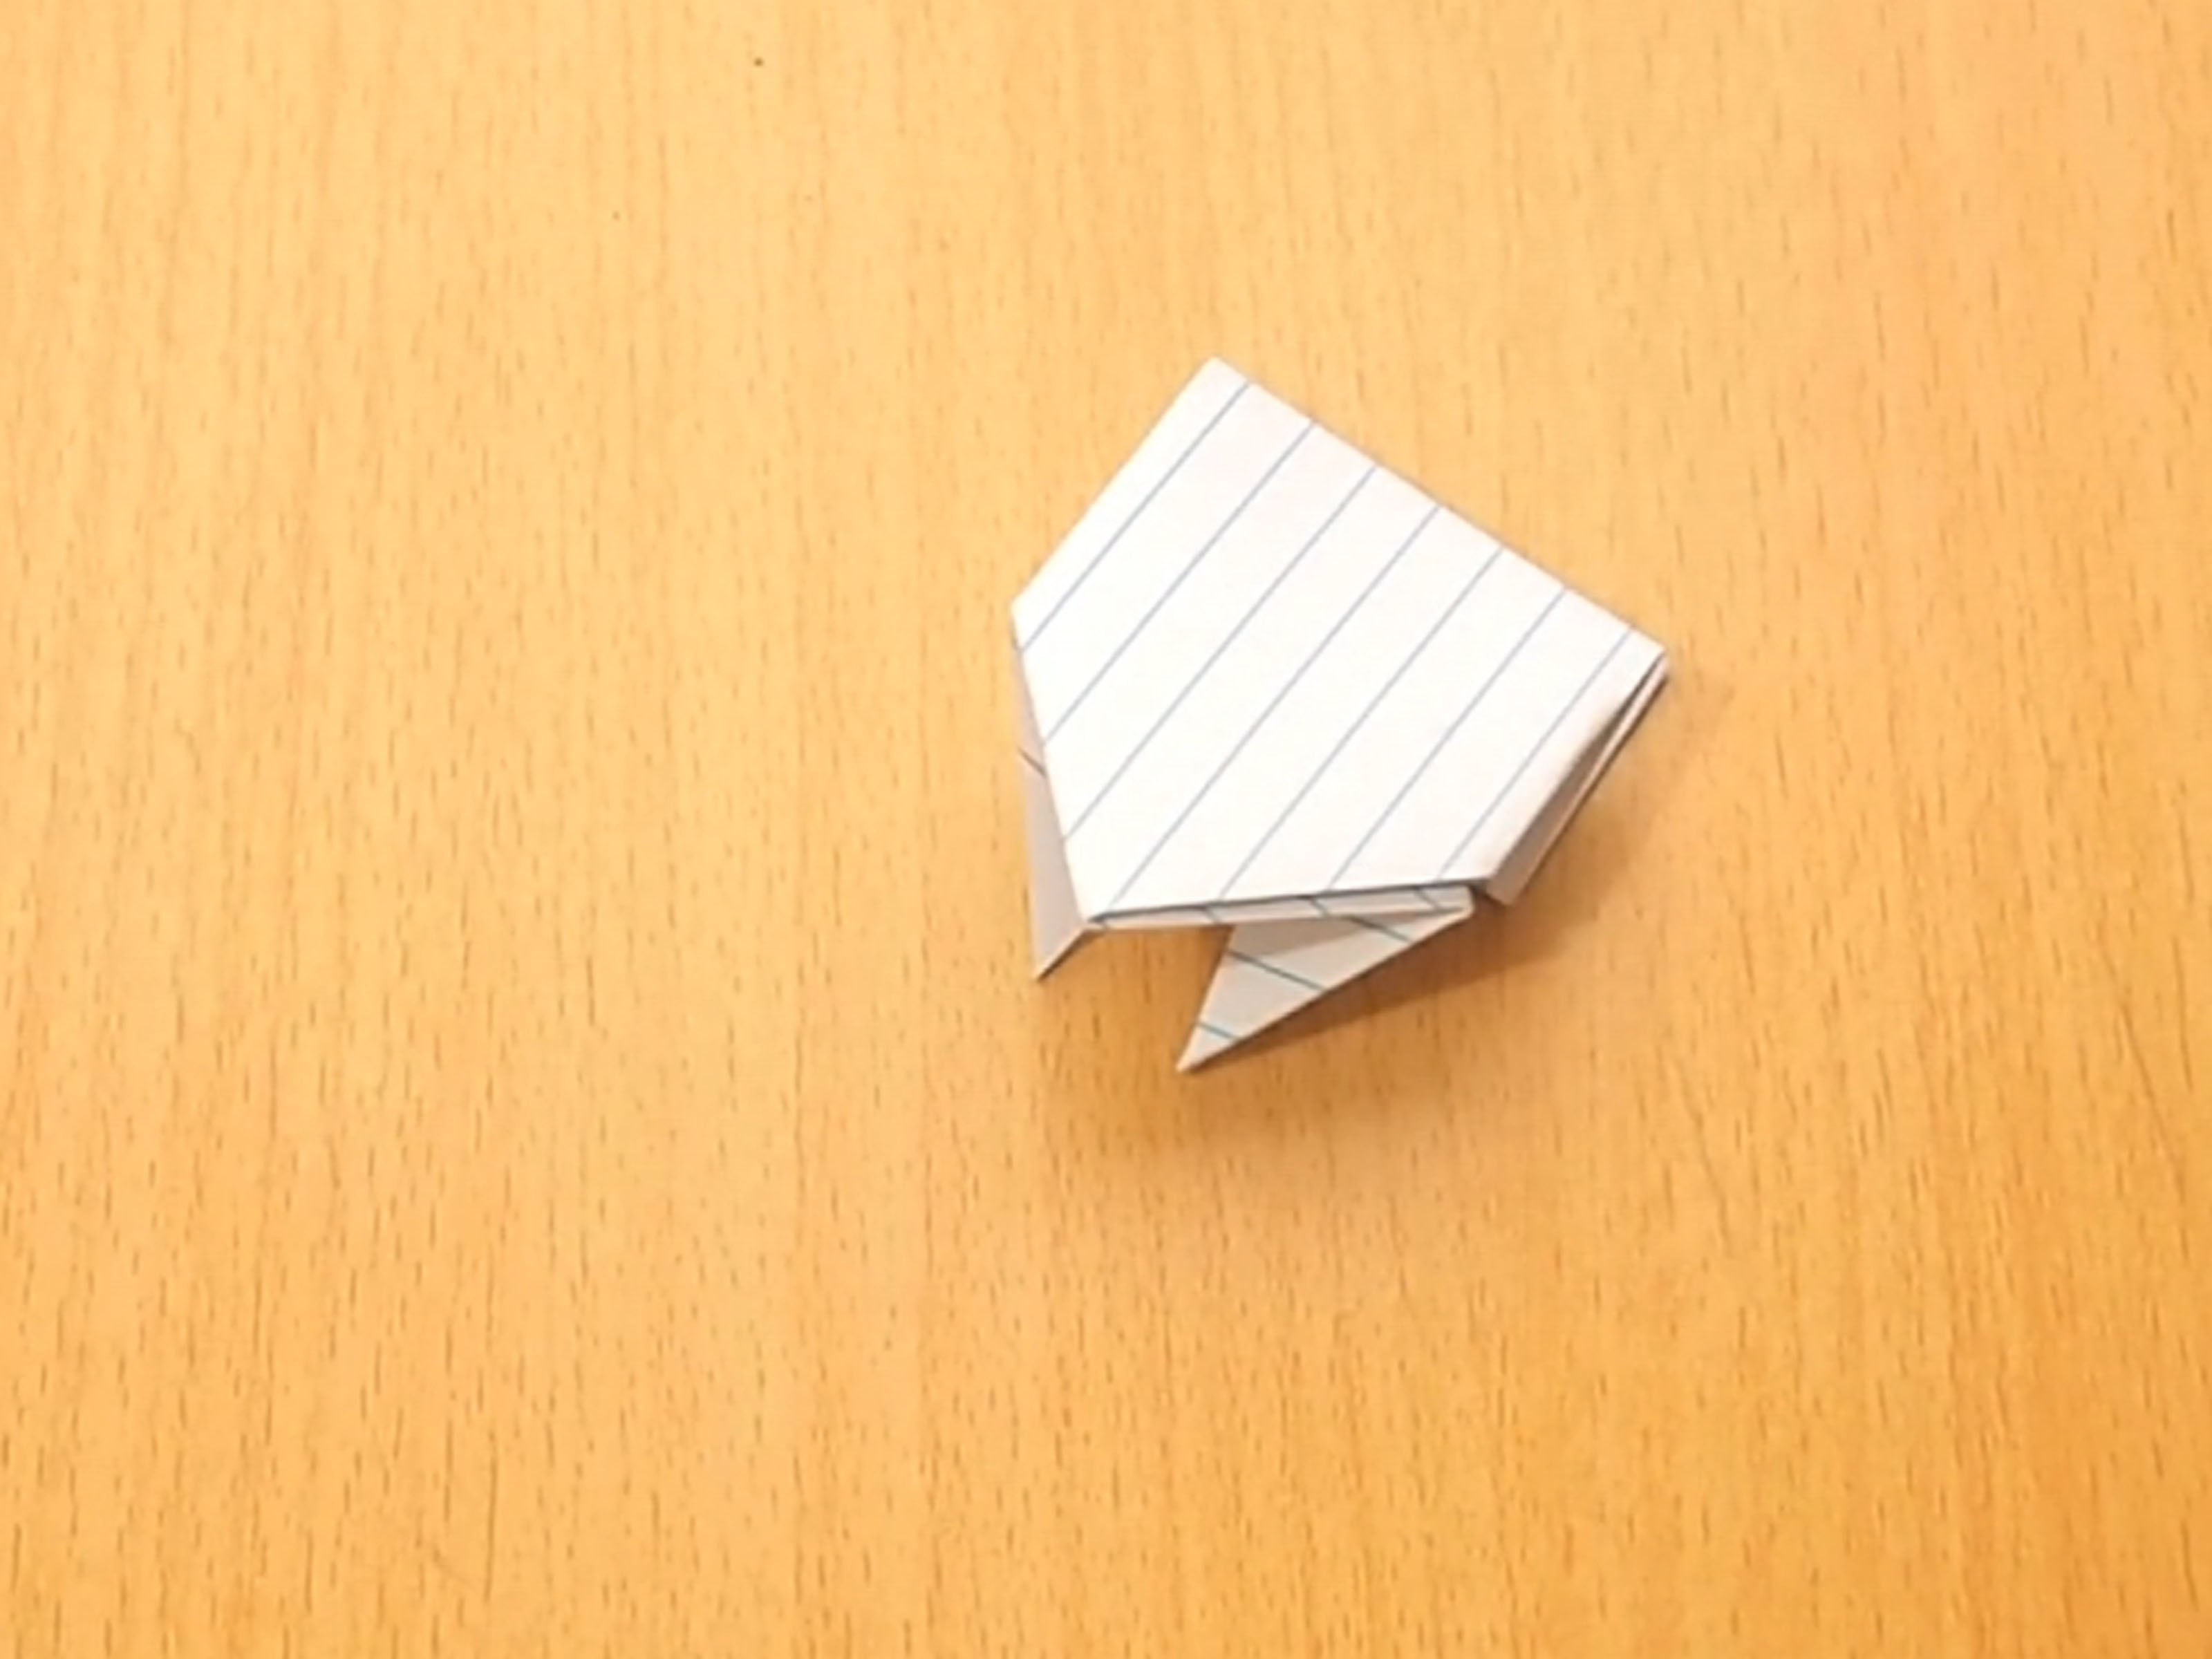 Money Frog Origami How To Make An Origami Jumping Frog From An Index Card 10 Steps